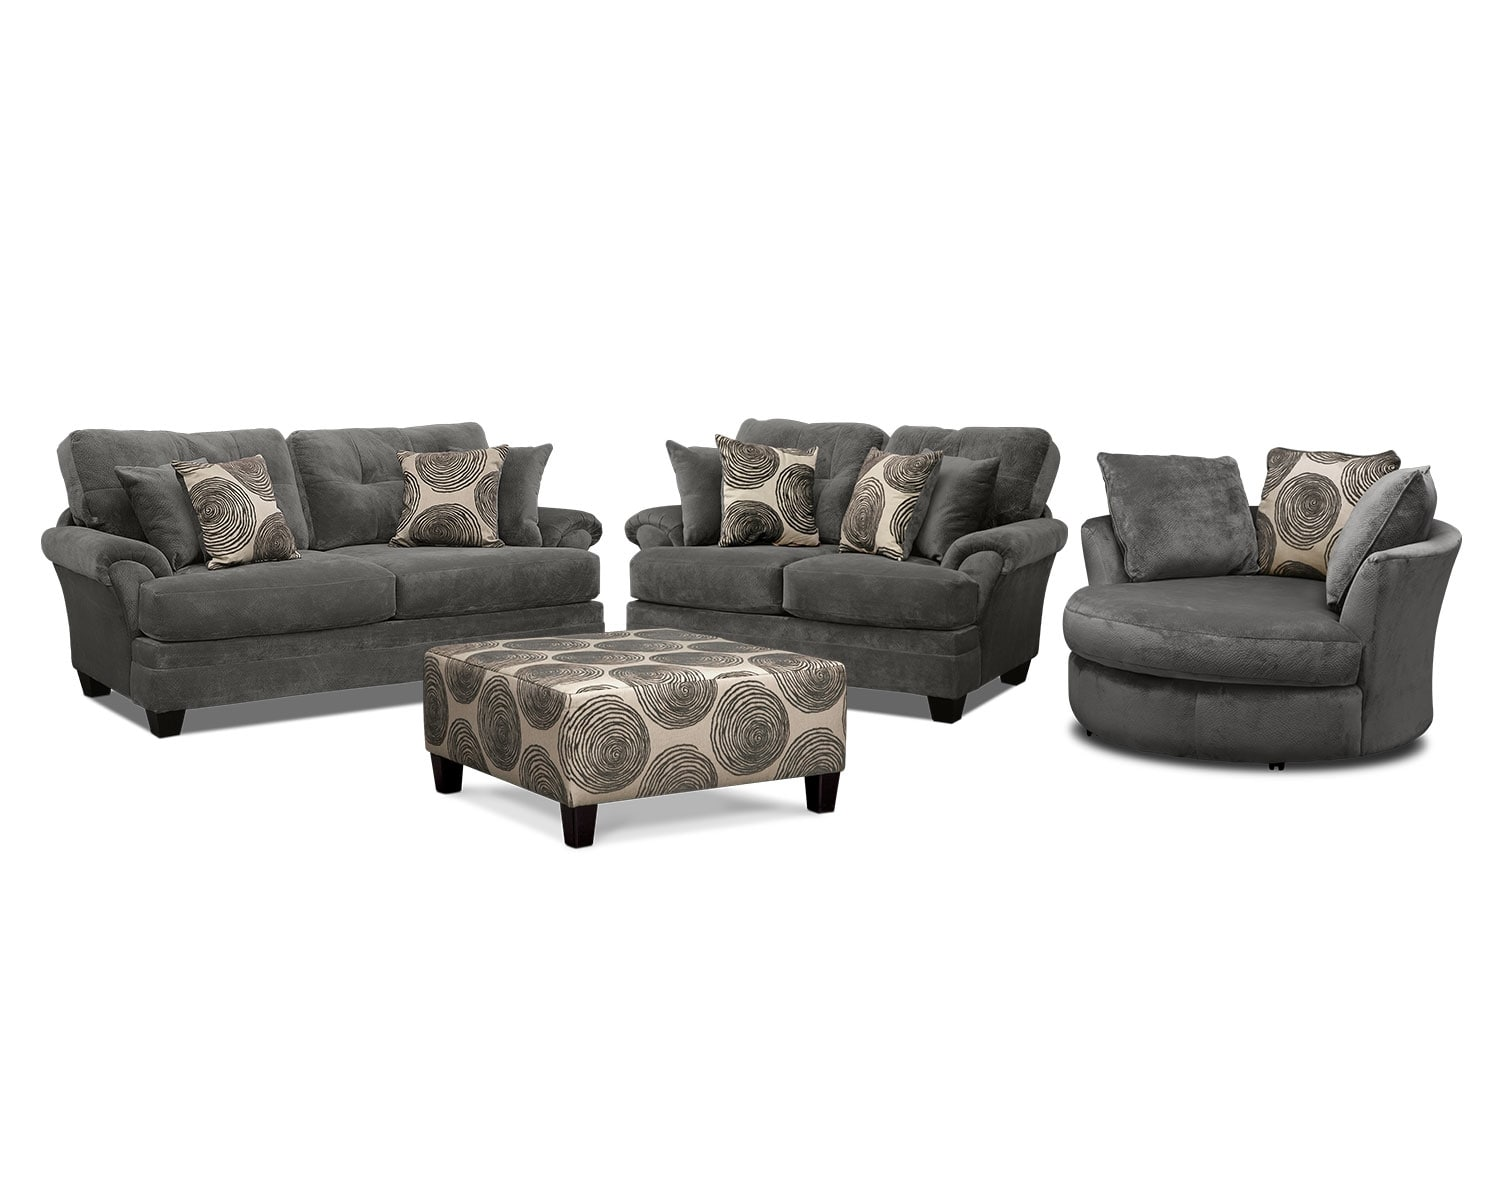 The Cordelle Living Room Collection - Gray | Value City Furniture ...